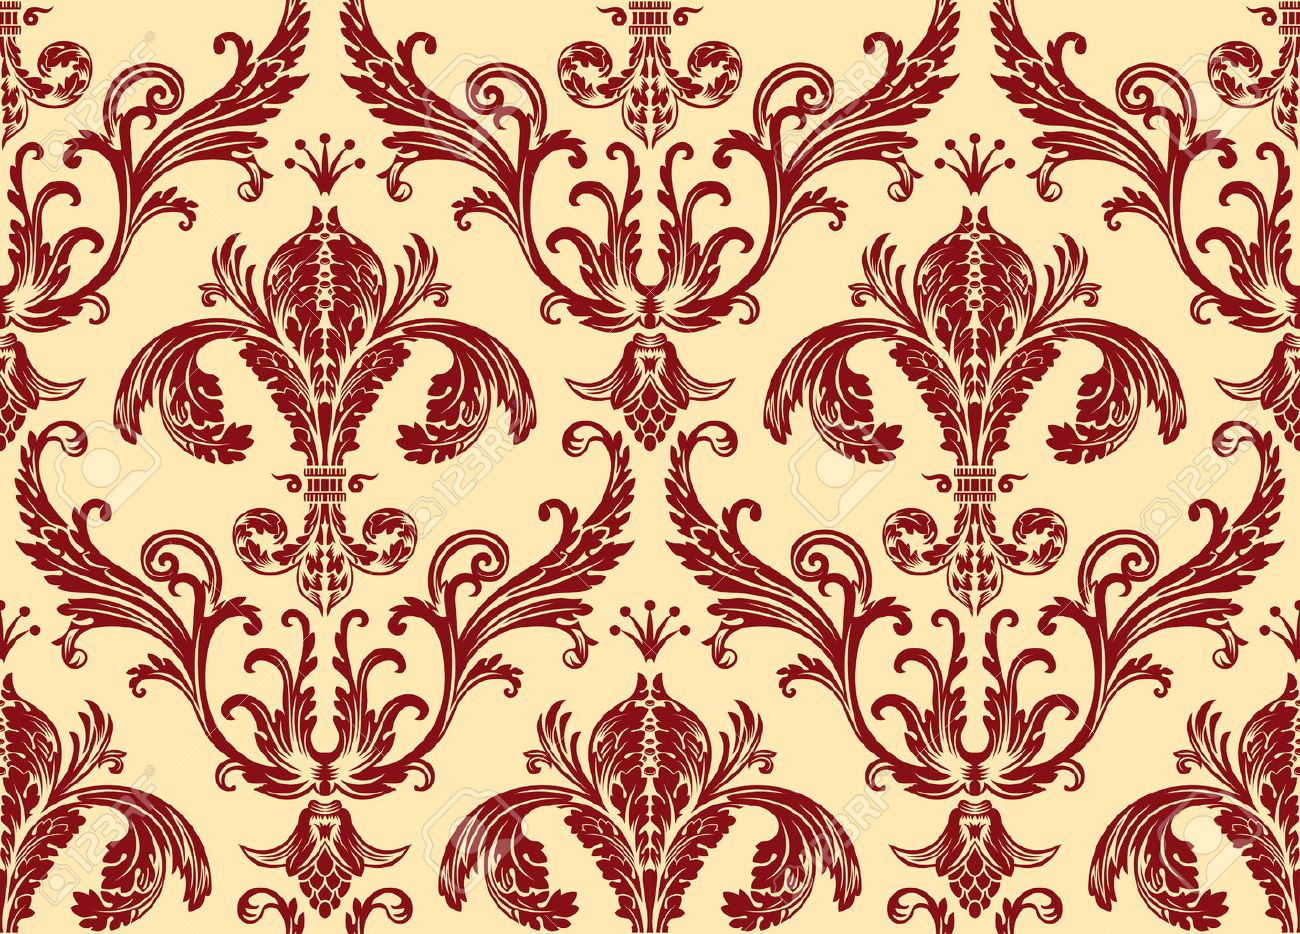 Background Antique Seamless Wallpaper. Red Decor Vintage Royalty ...